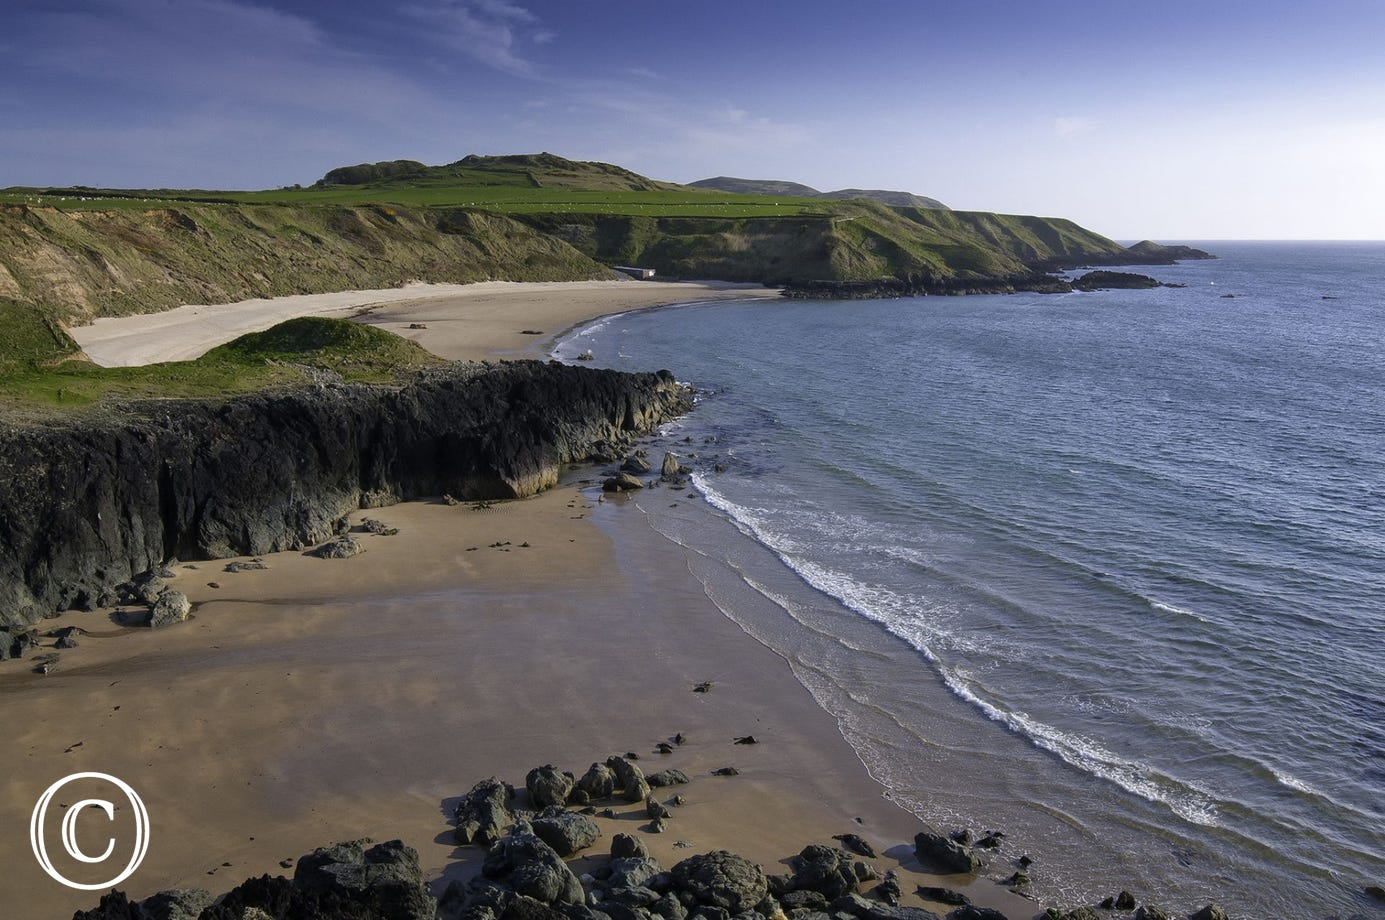 The sand at Porth Oer (5.5 miles) sometimes 'squeaks' under your feet